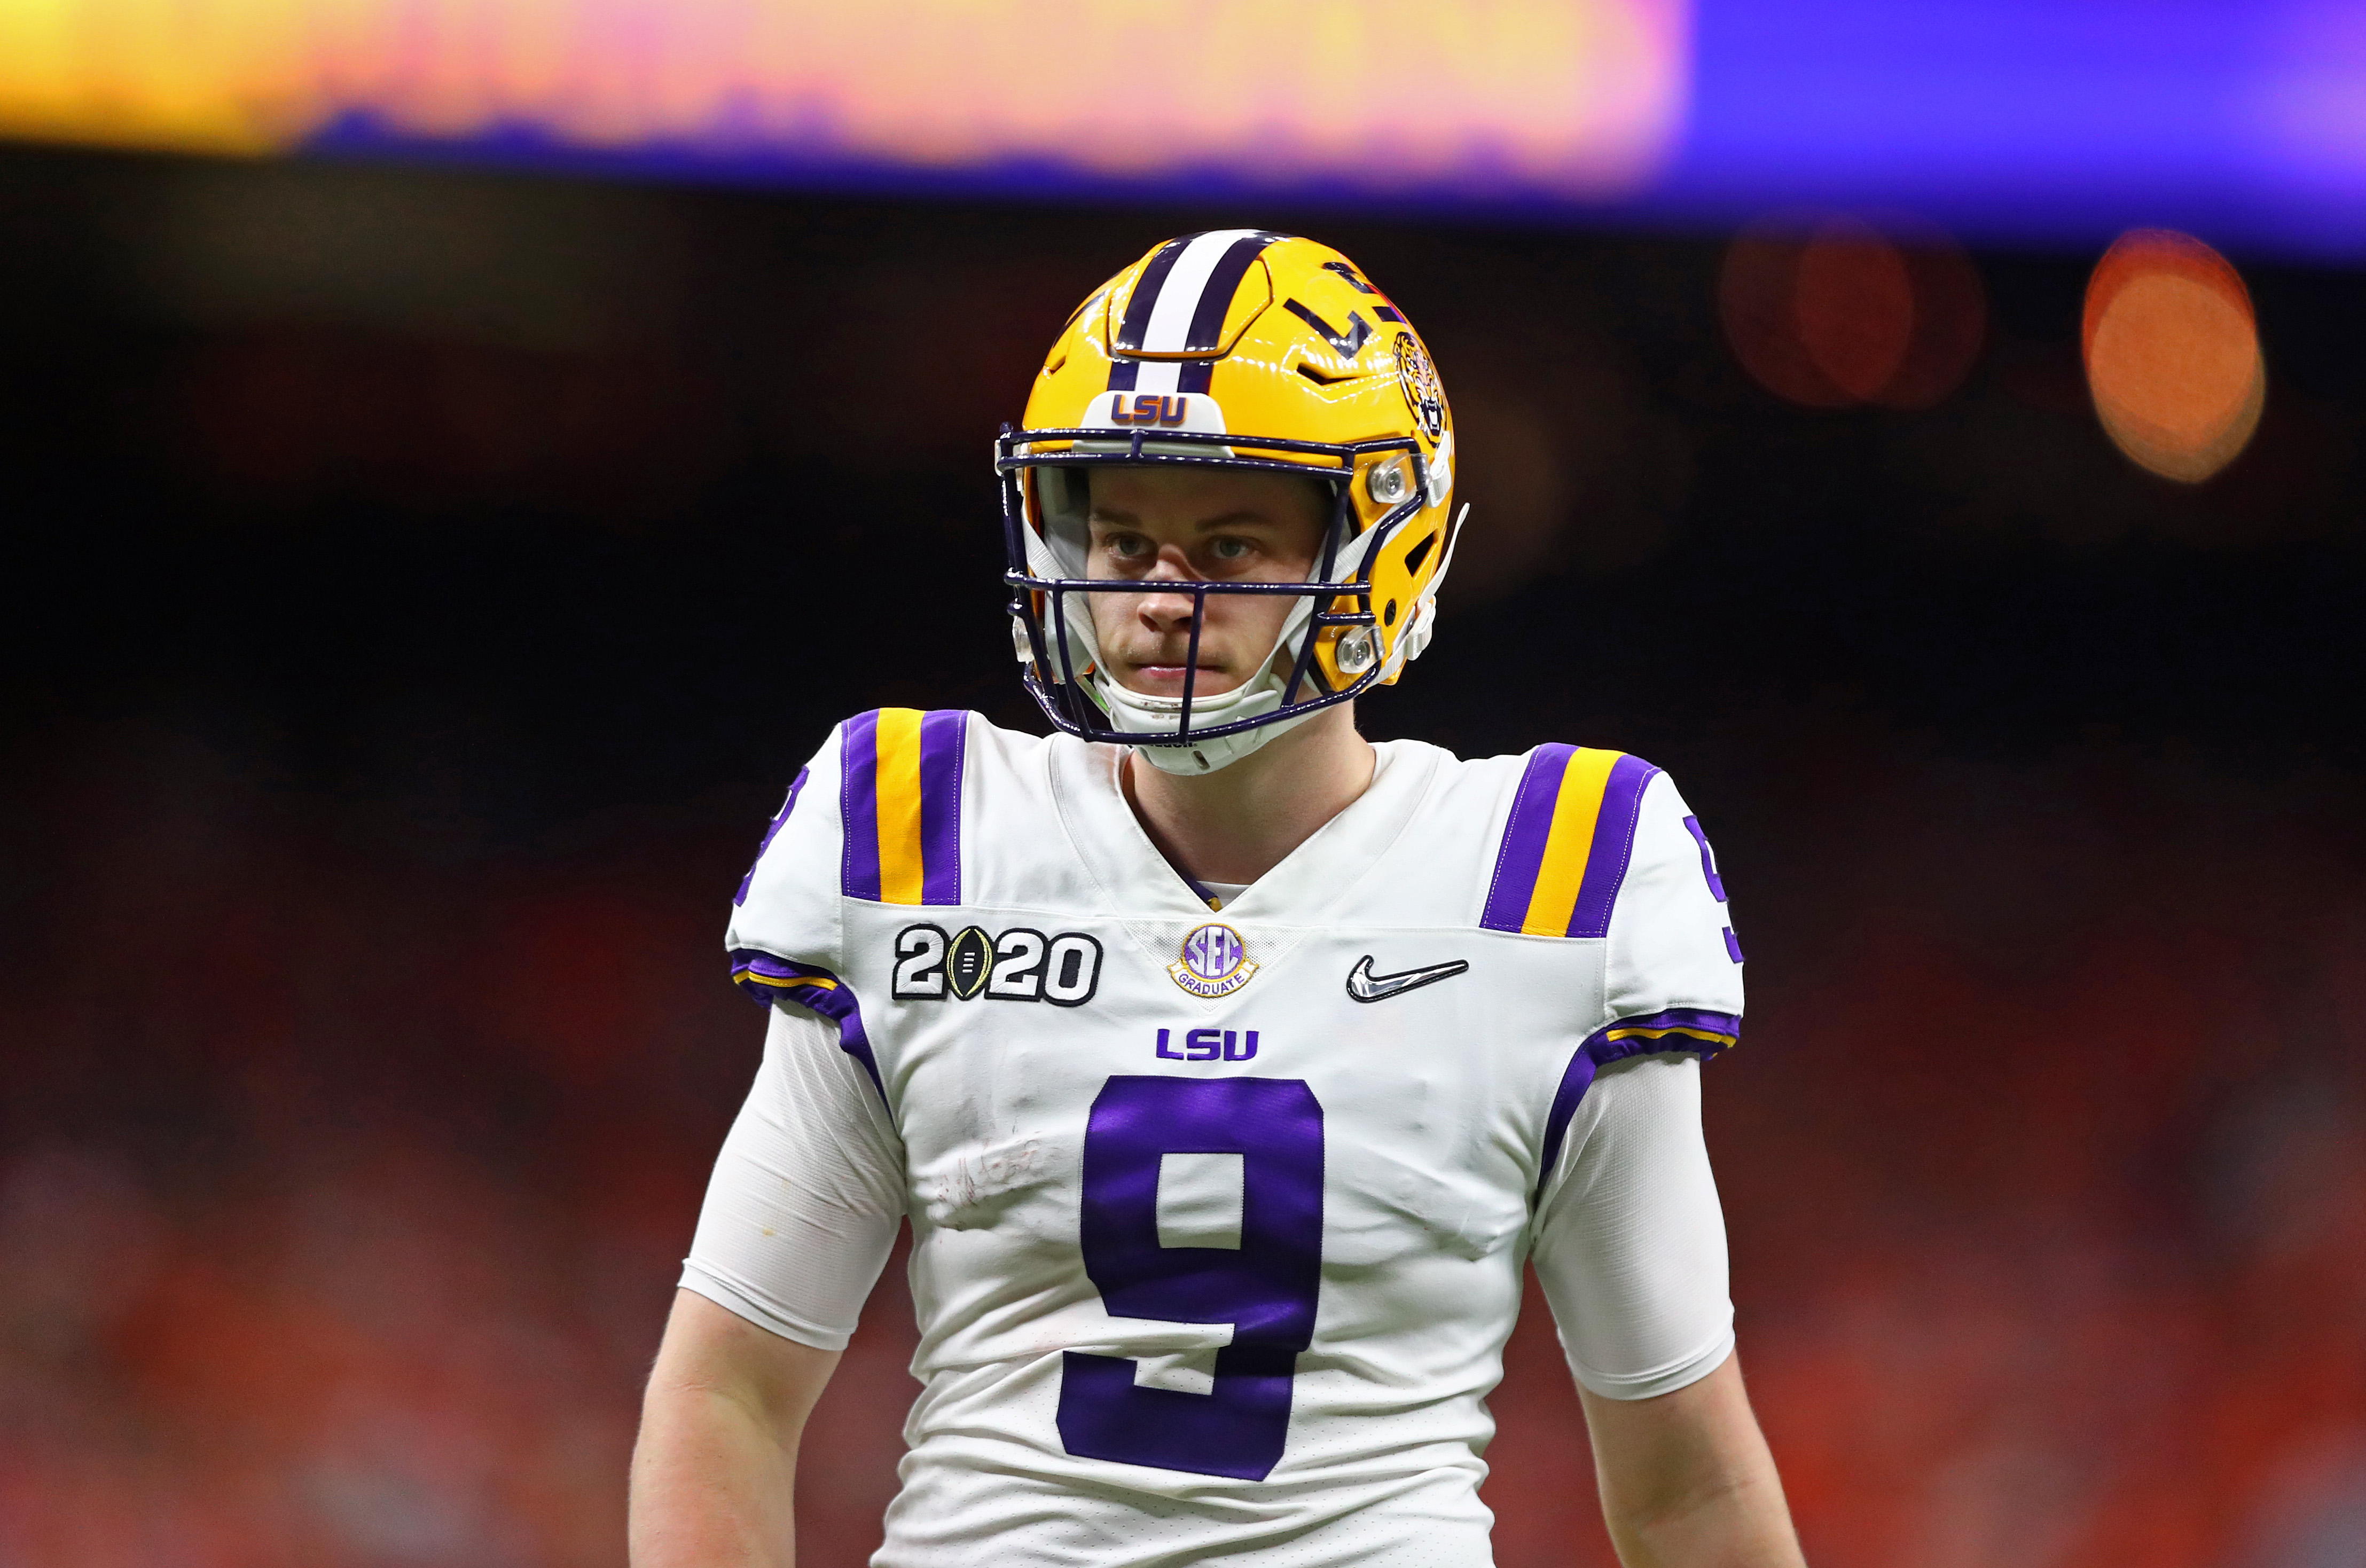 Could the Panthers Trade Up for Joe Burrow?